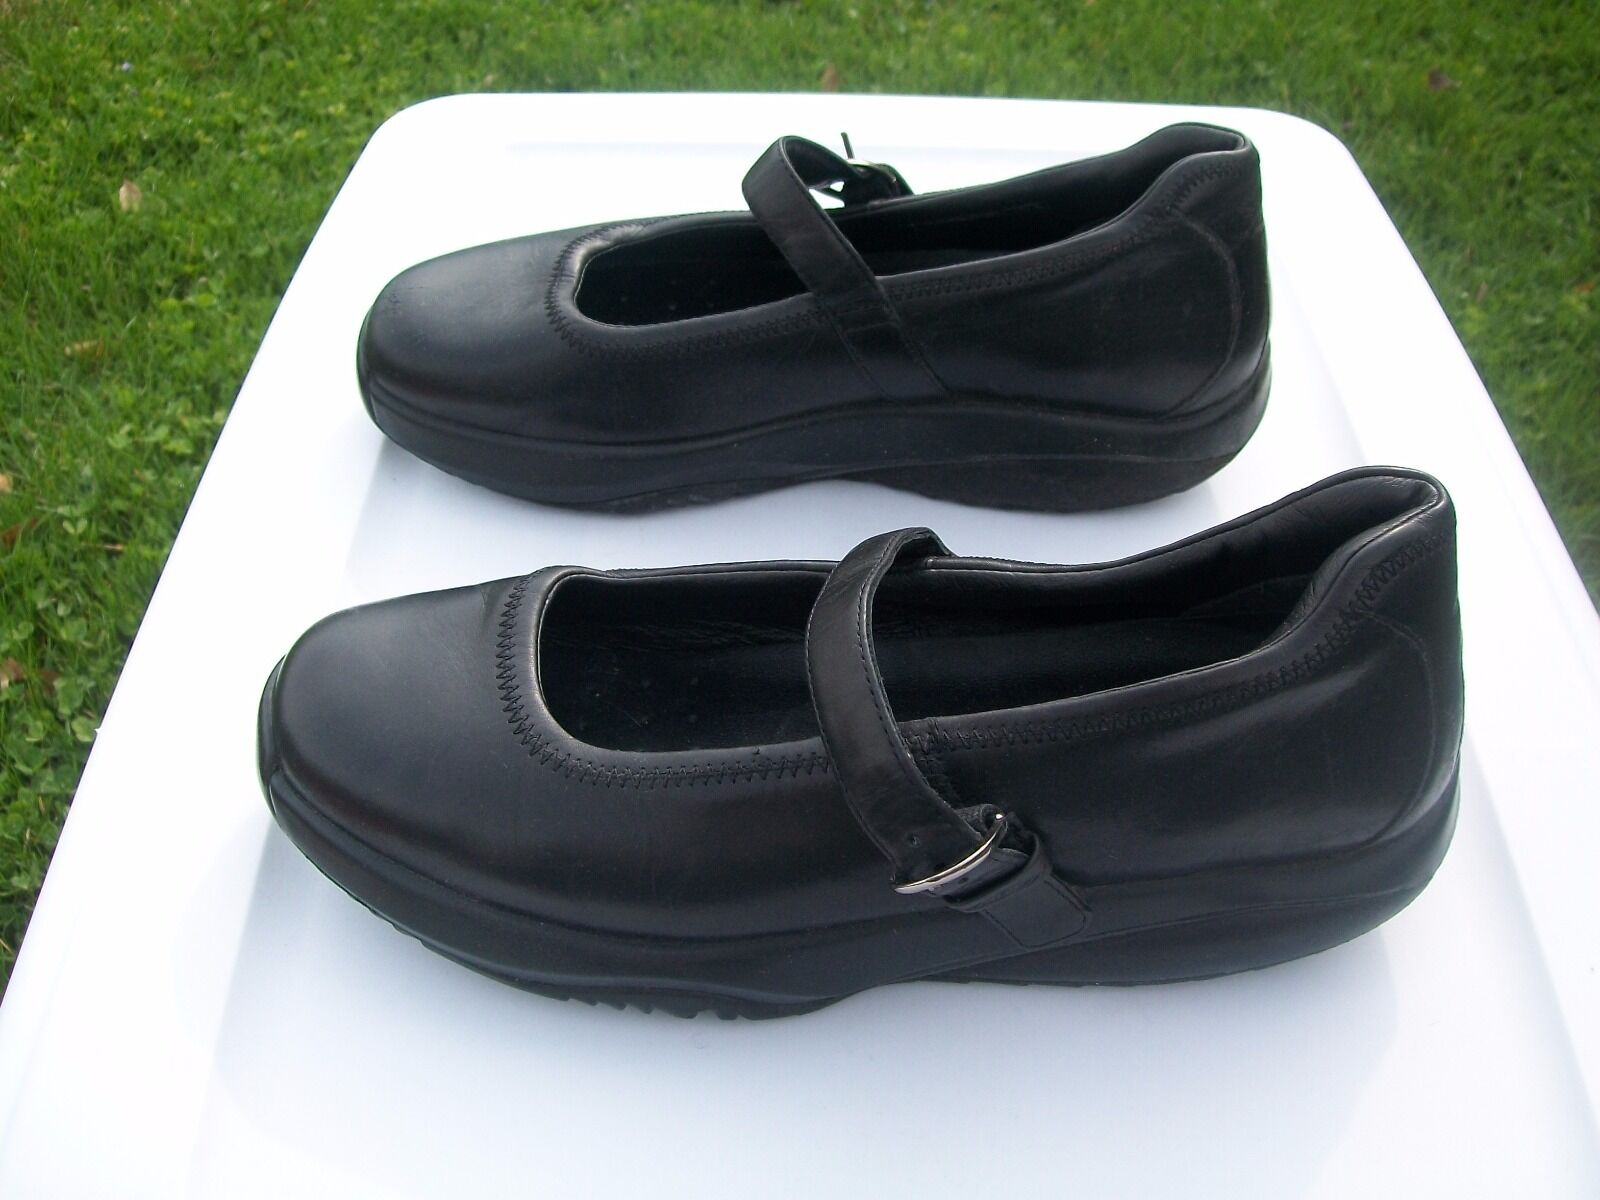 MBT Womens Size 10 Black Leather Mary Jane Rockers